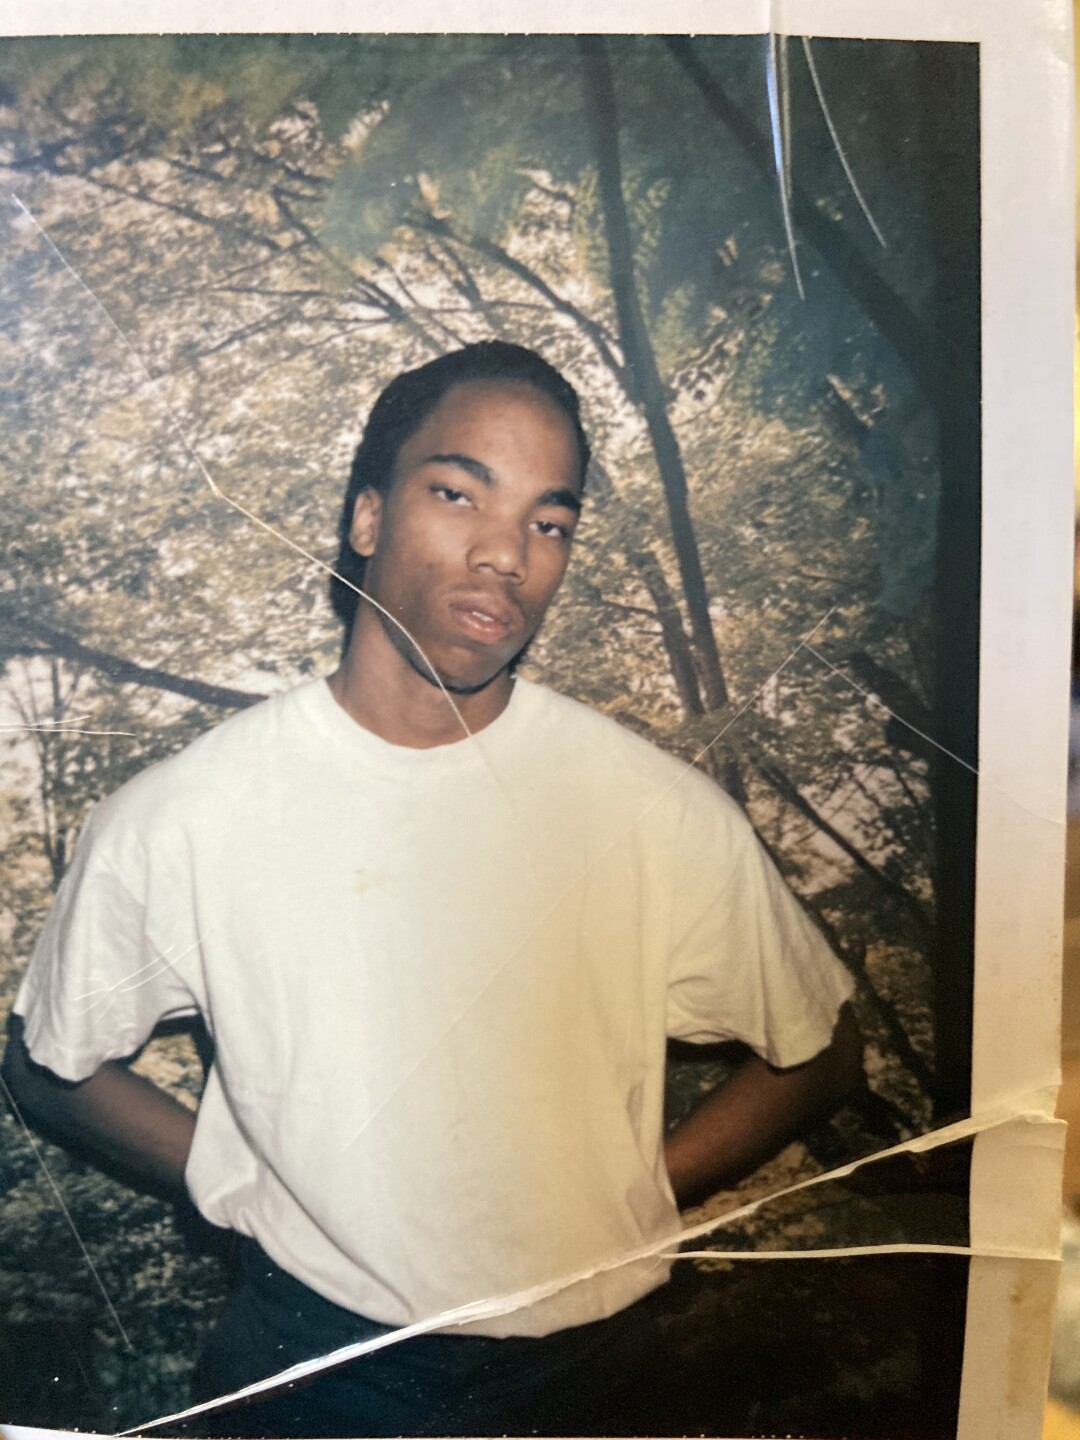 Dominee Meek in prison after receiving a life sentence